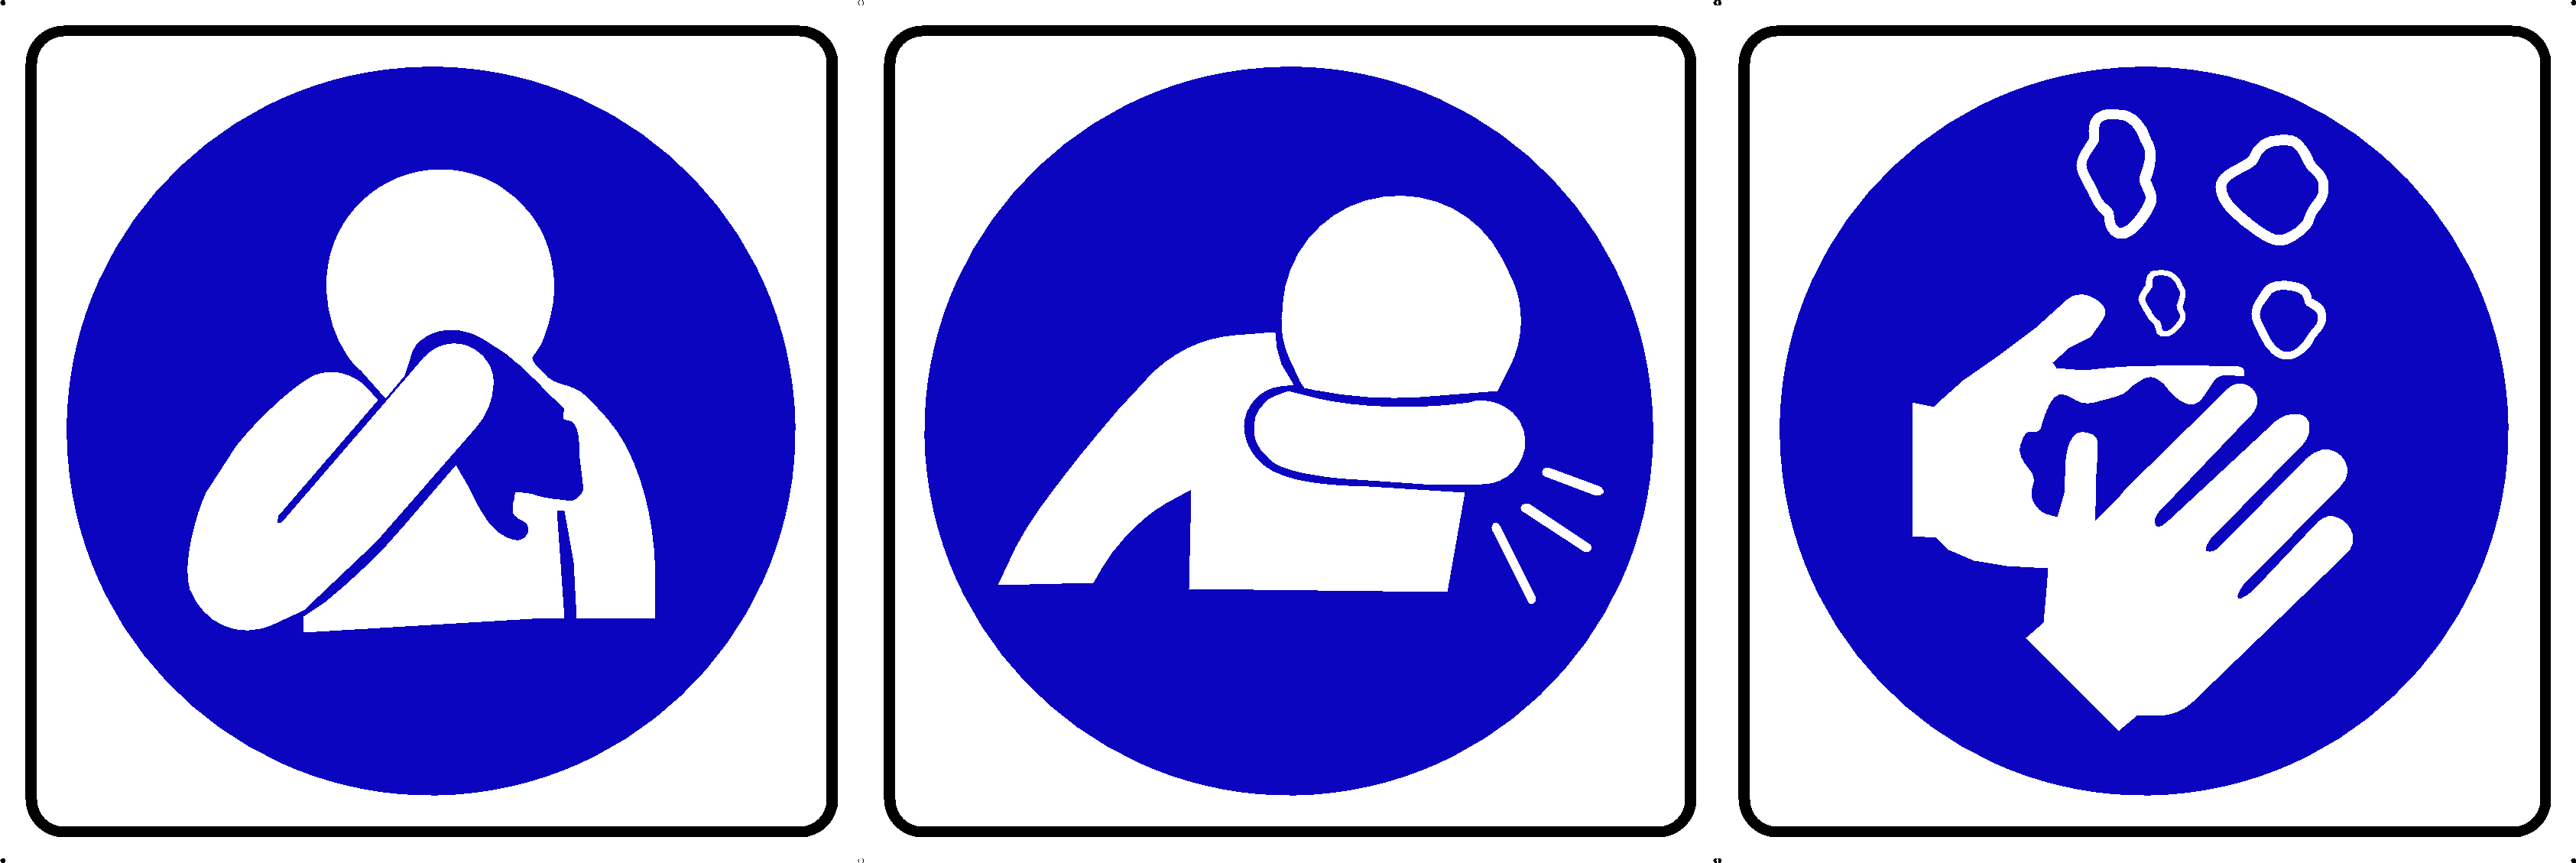 SYMBOLS NOSE-COUGH-WASH SIGN